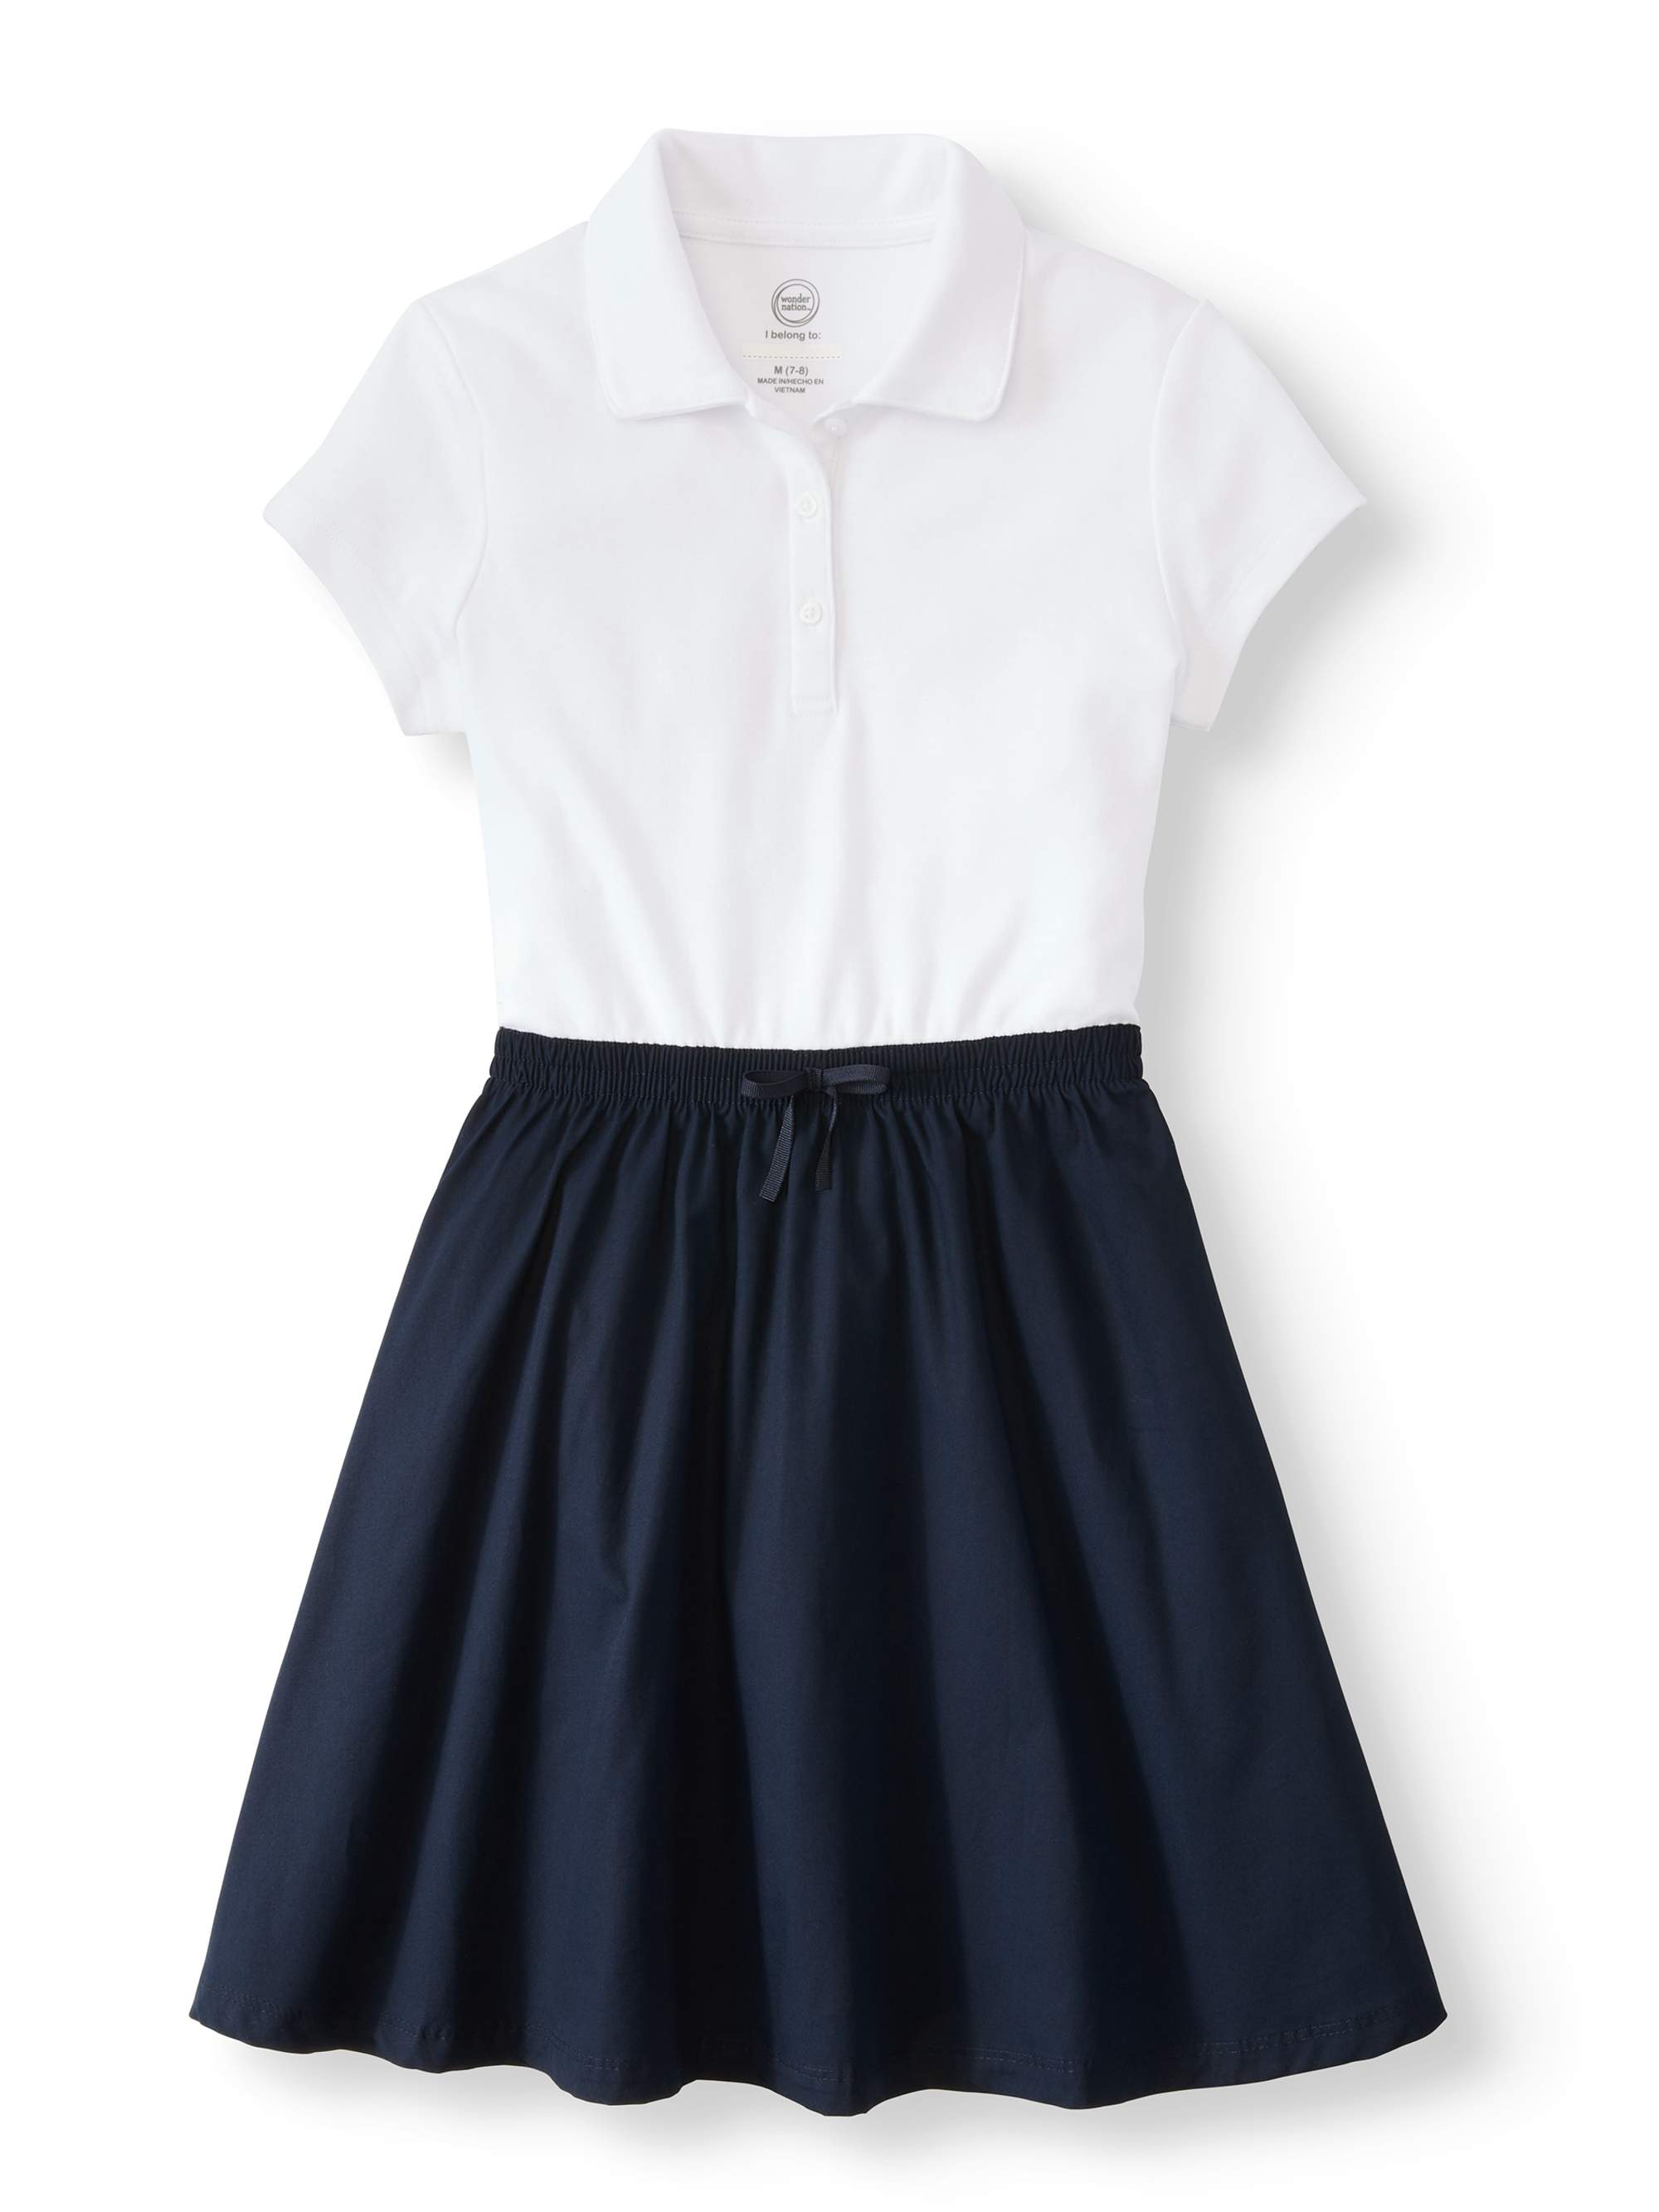 Girls School Uniform 2-fer Dress